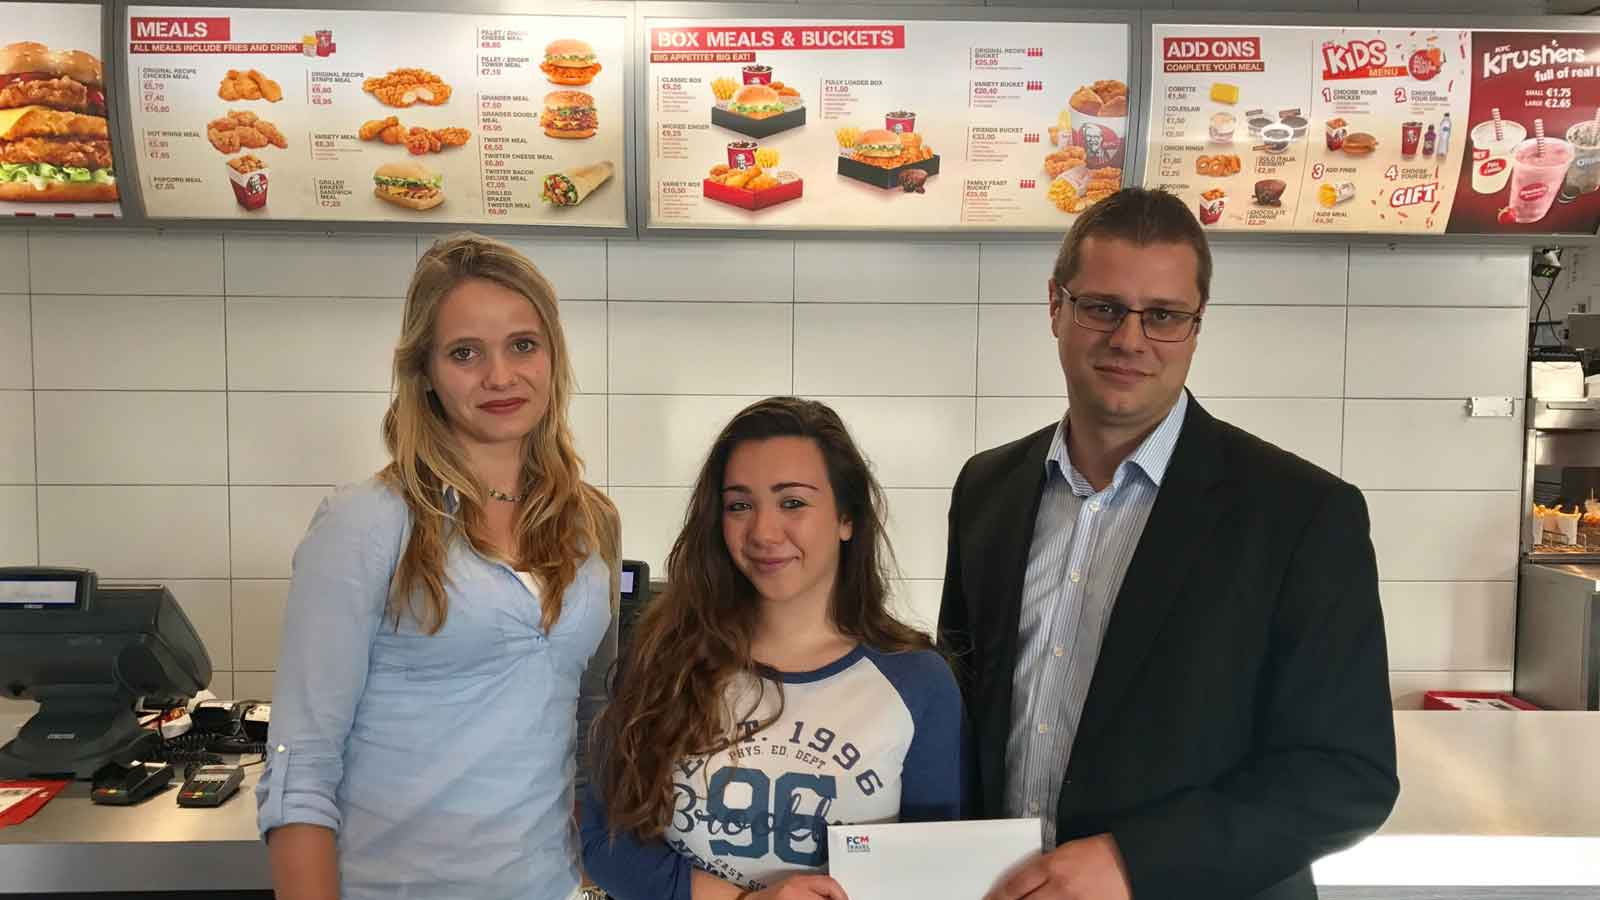 KFC winner of trip to watch Ed Sheeran live in London